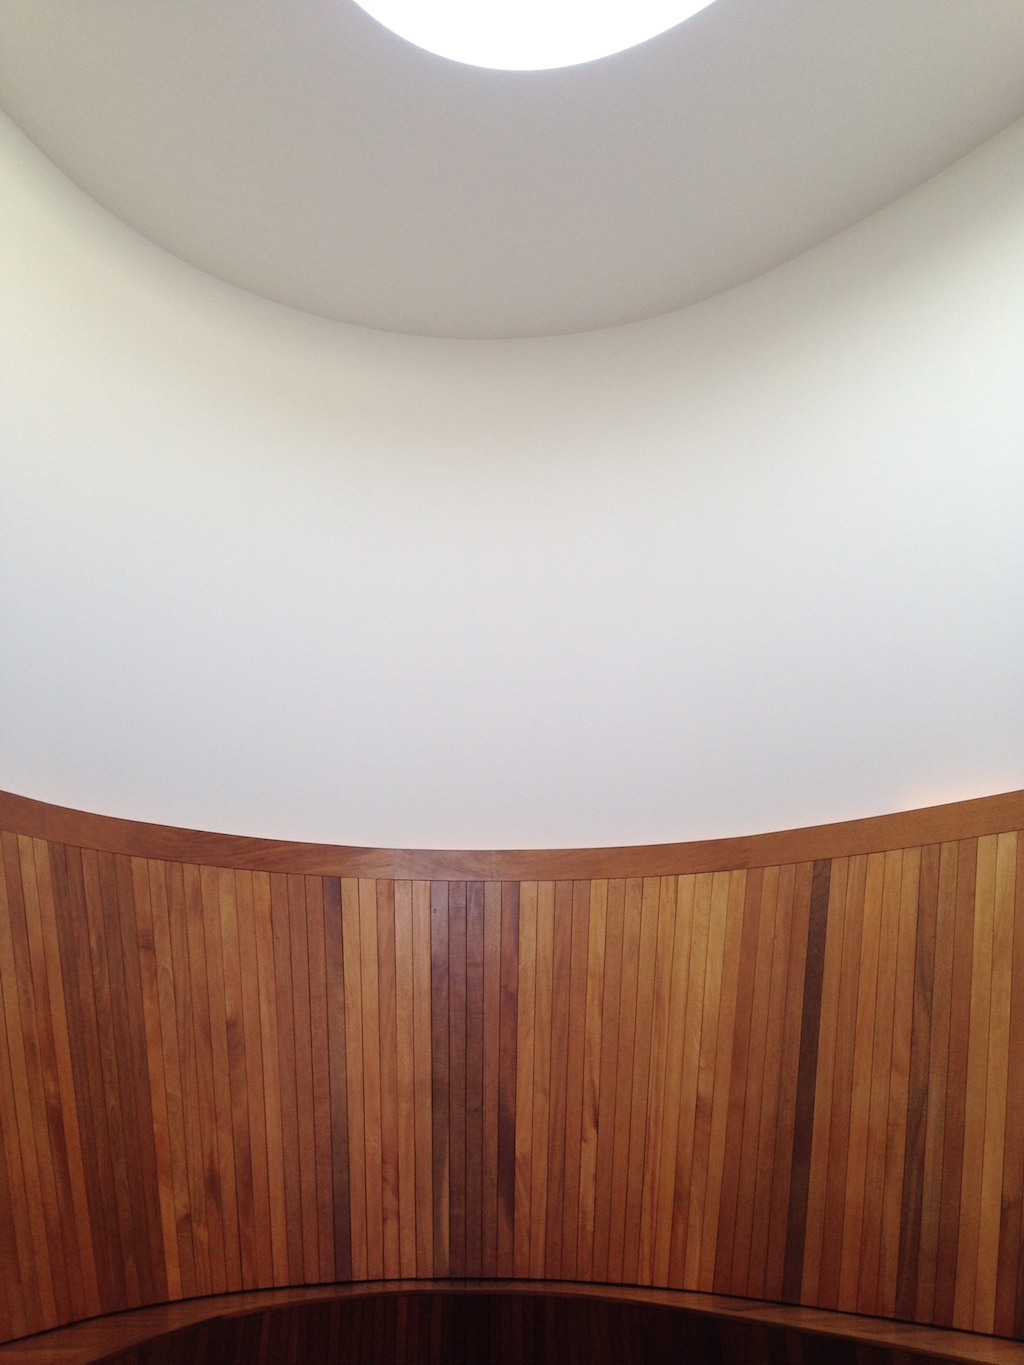 Light Reign by James Turrell | Henry Art Gallery